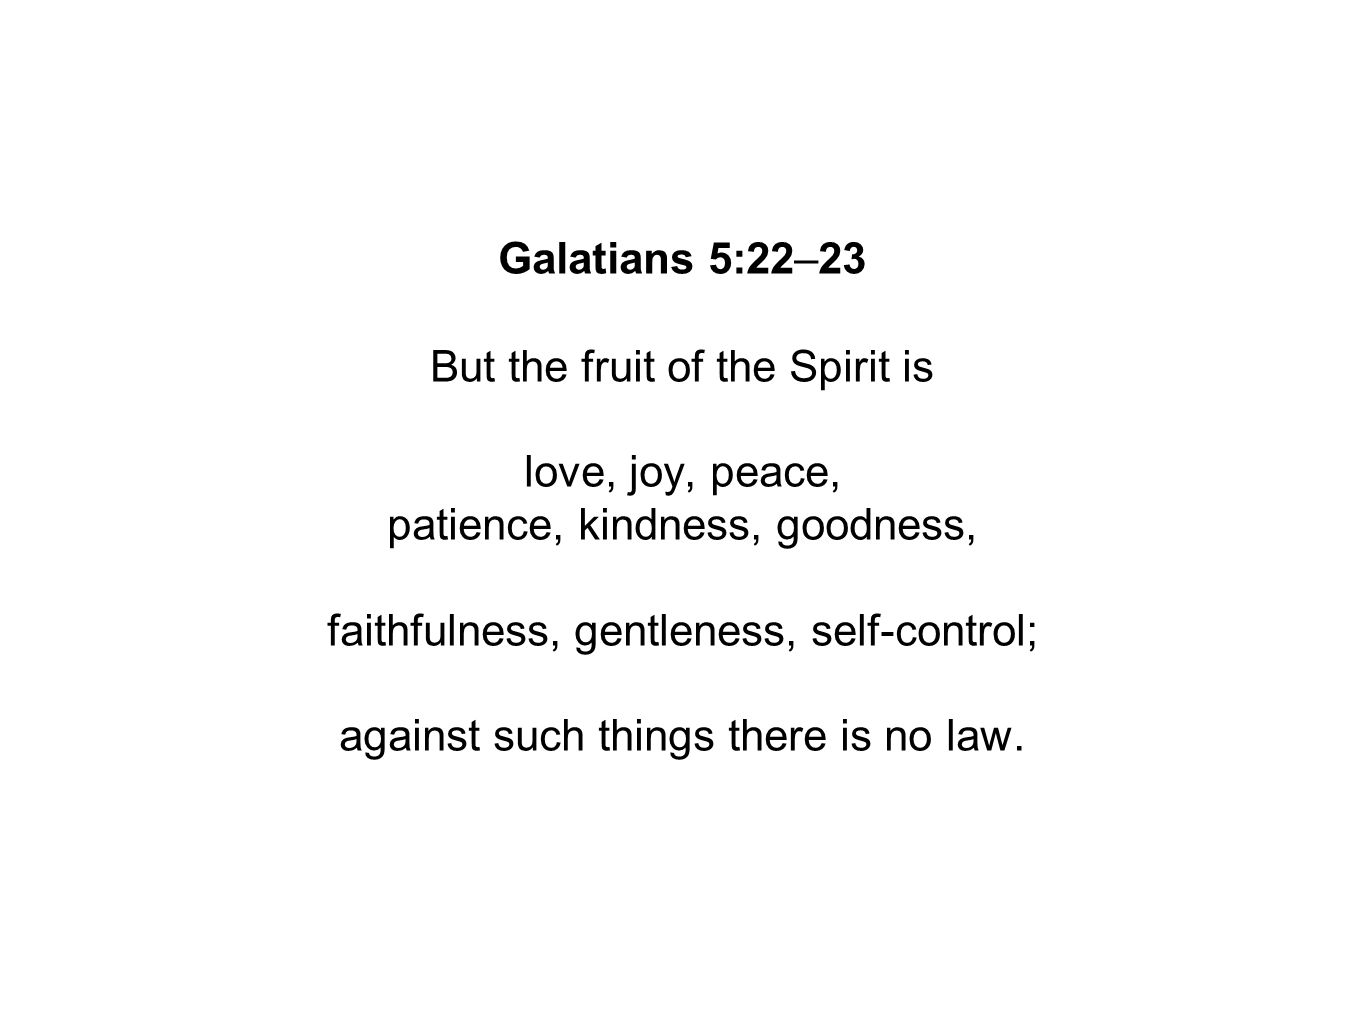 Galatians 5:22–23 But the fruit of the Spirit is love, joy, peace, patience, kindness, goodness, faithfulness, gentleness, self-control; against such things there is no law.